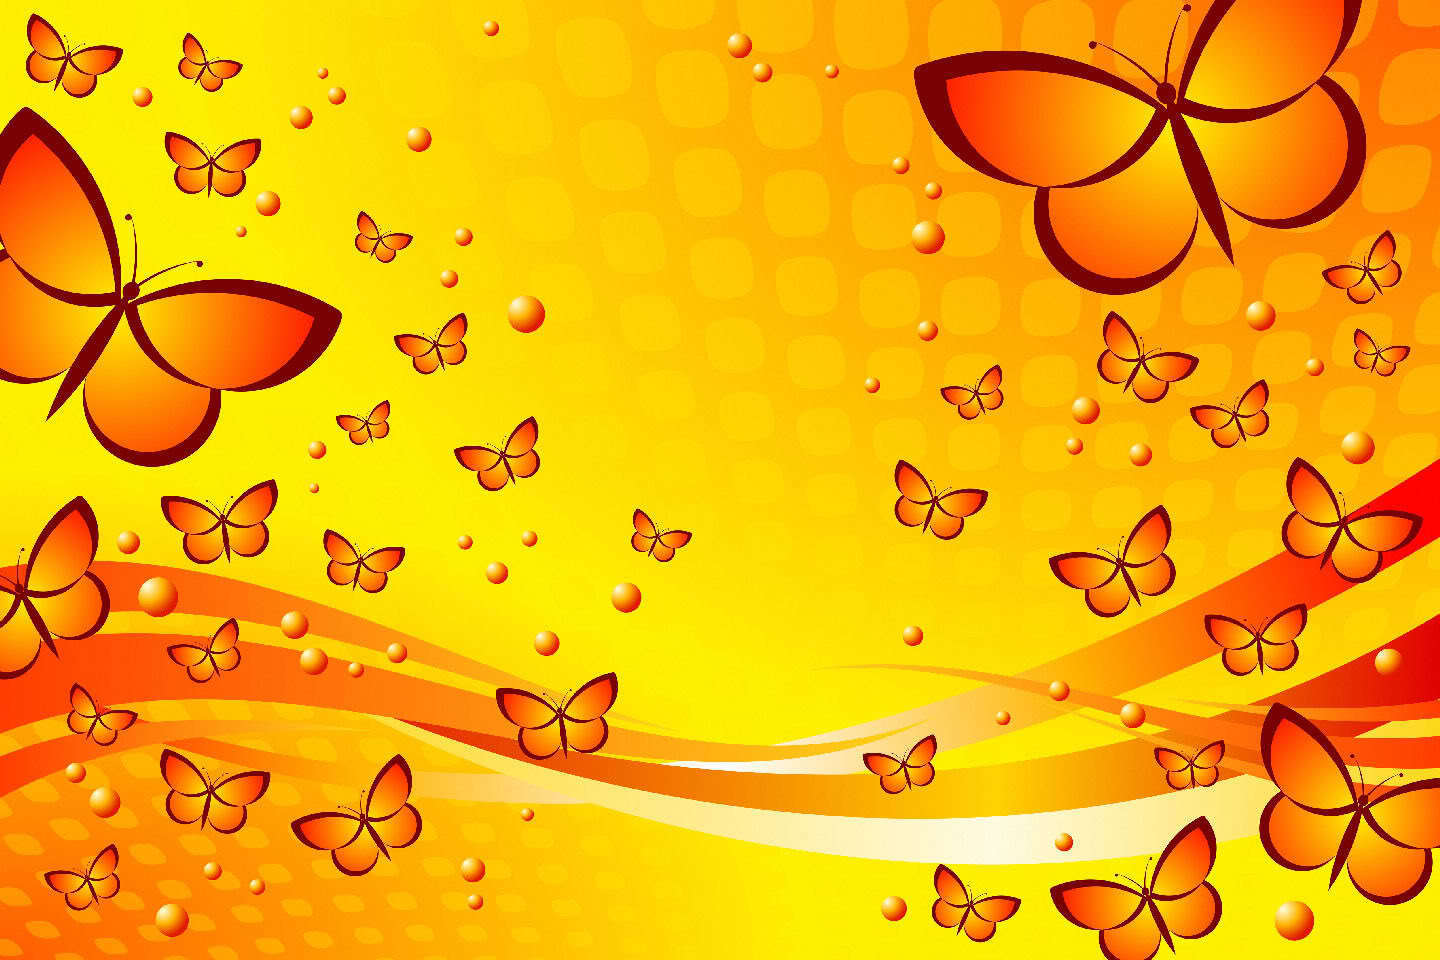 Wallpapers Designs Cool Girly Wallpapers 1440x960